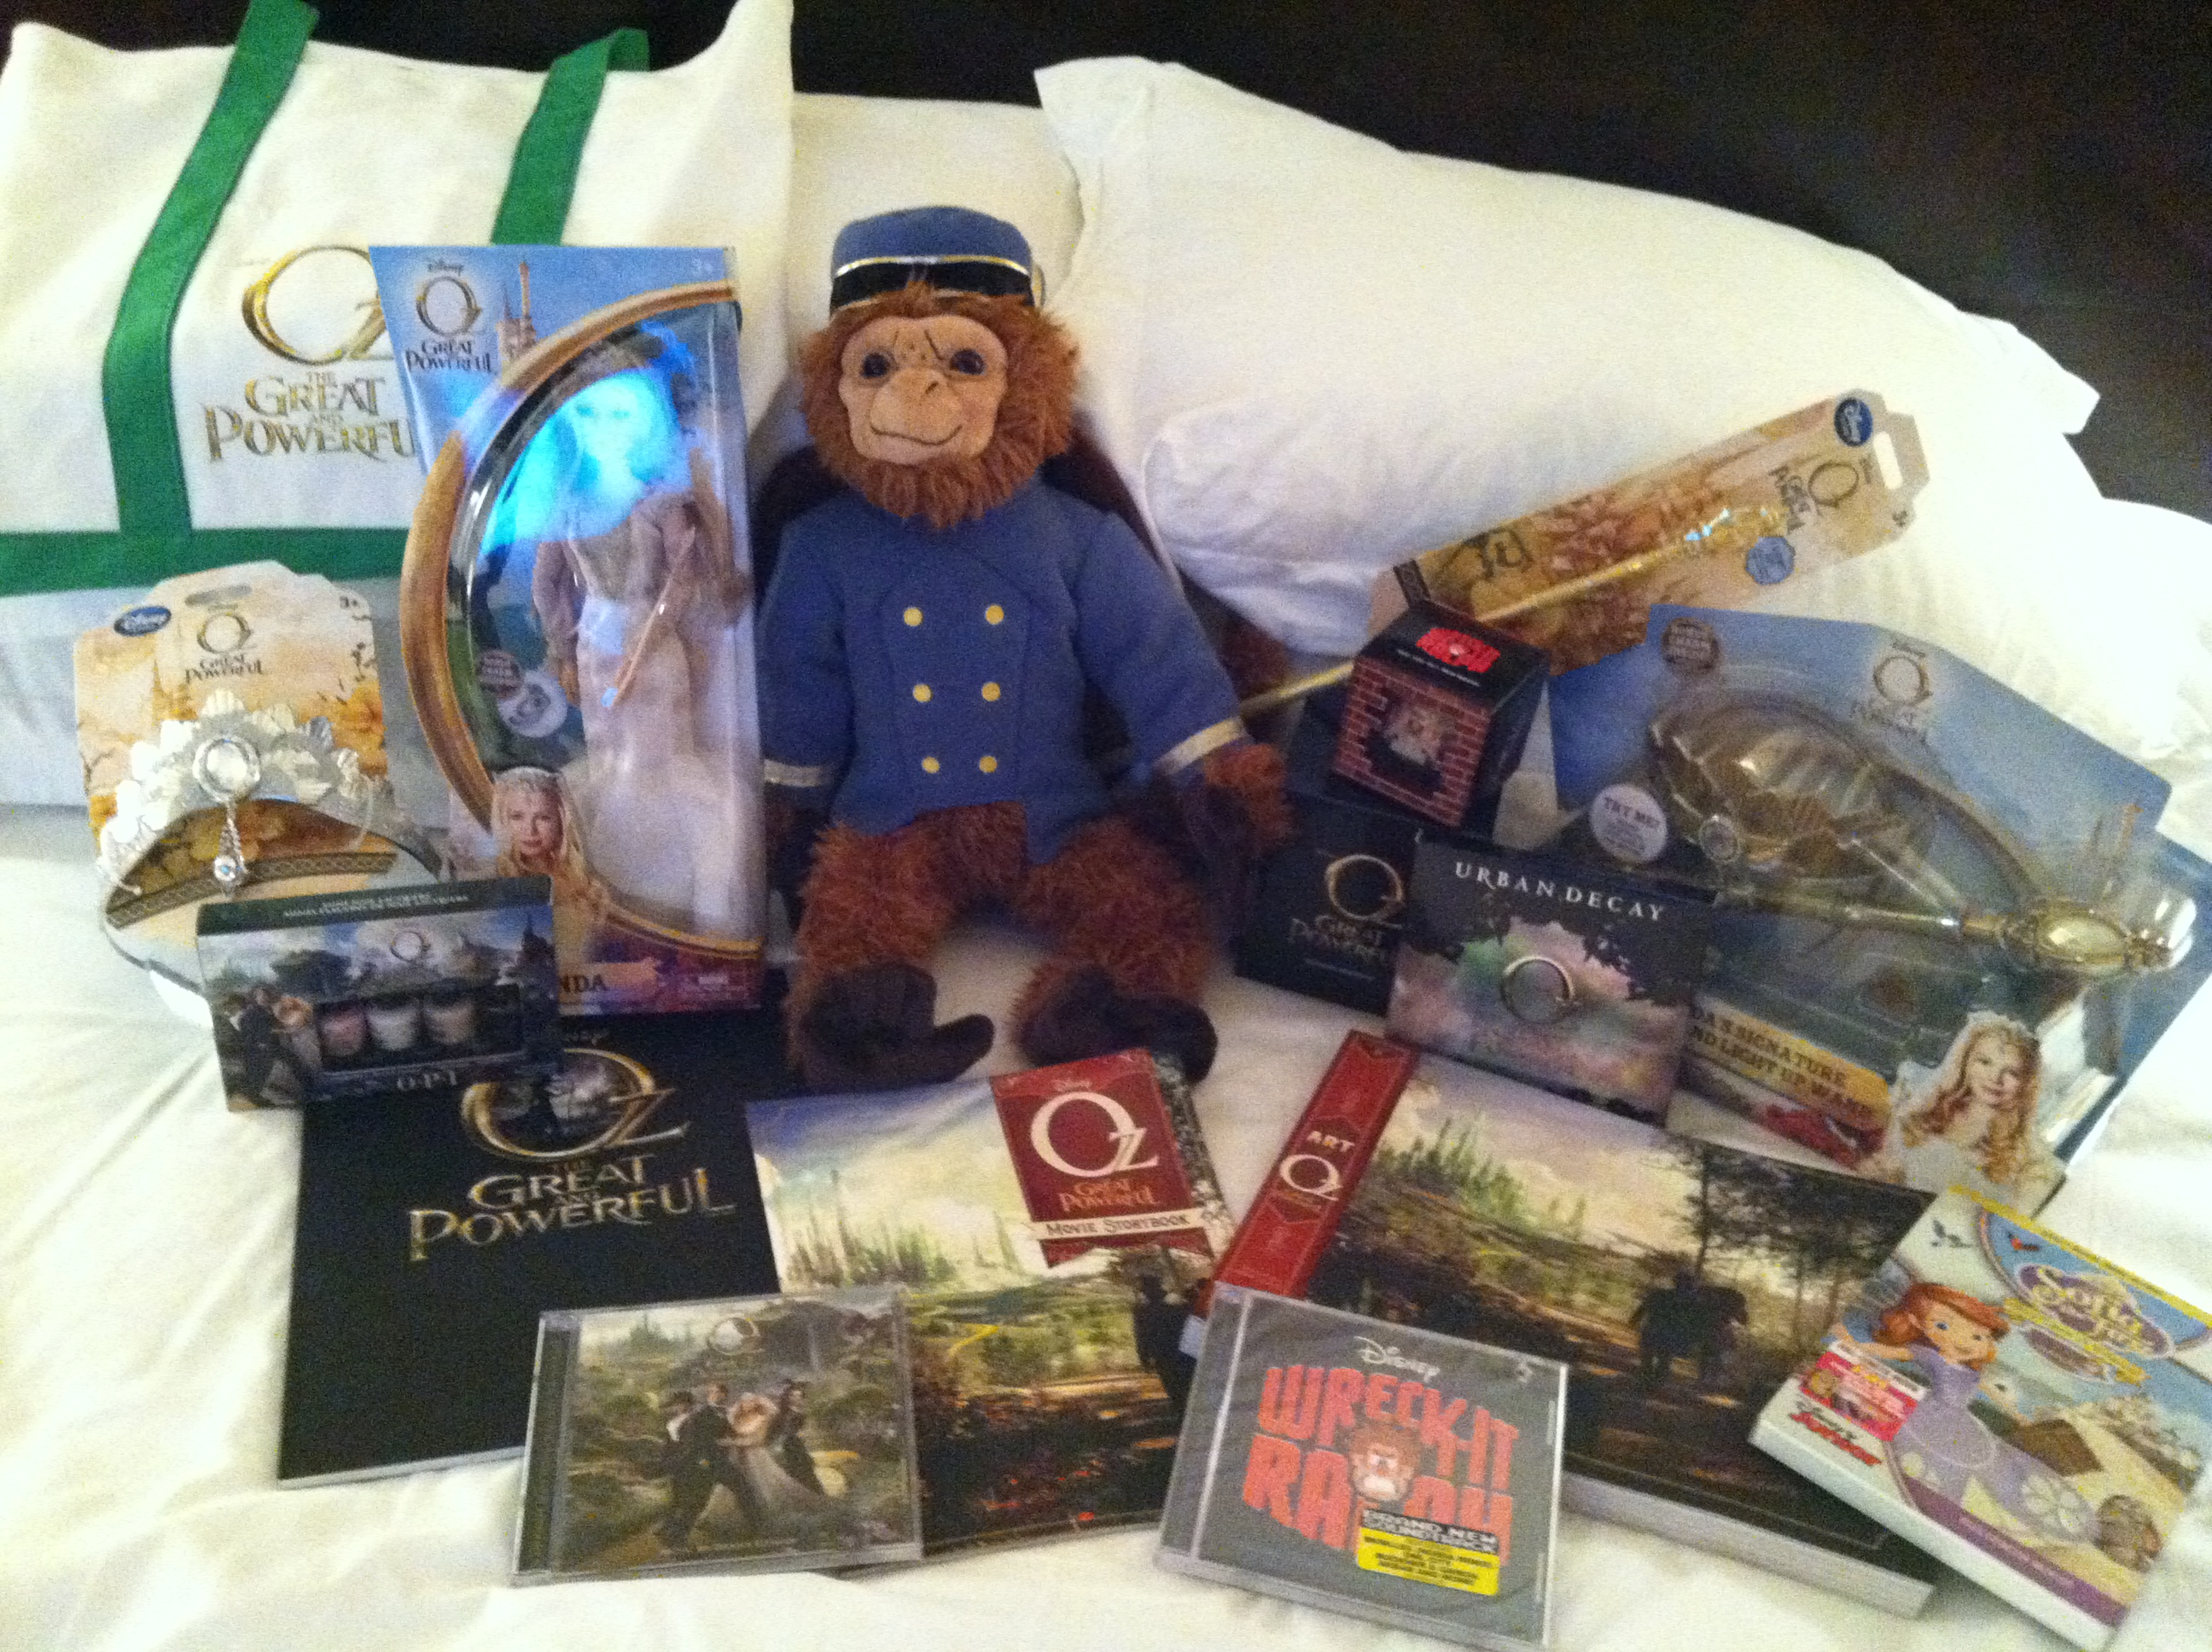 Disney Oz Merchandise #DisneyOzEvent